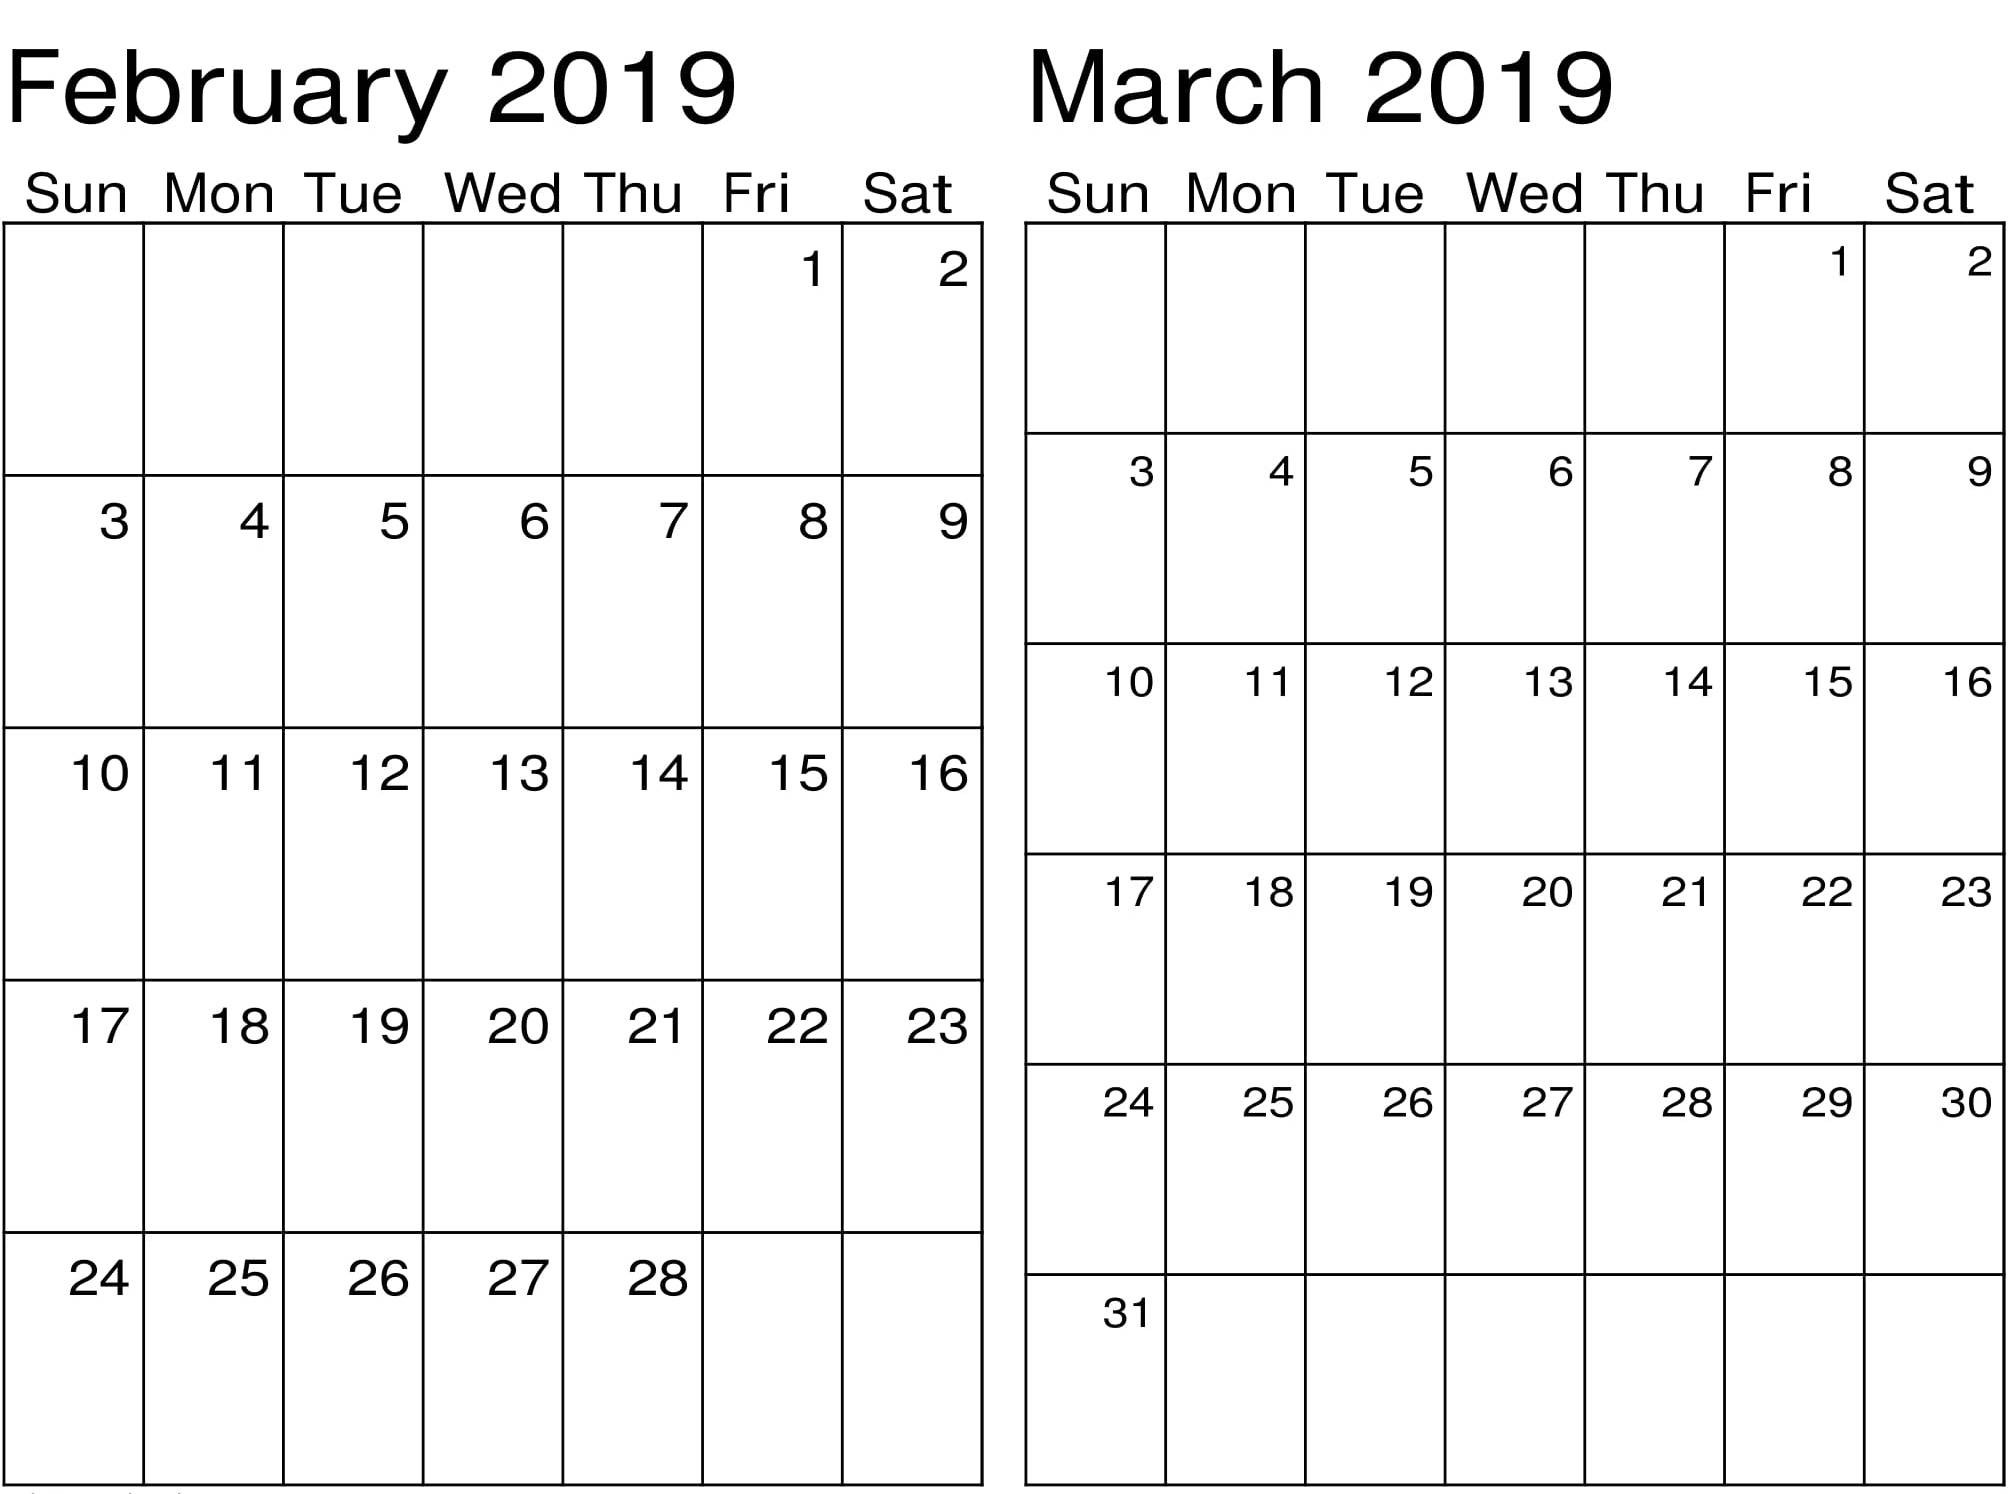 March Calendar 2019 Más Populares February March Calendar 2019 2018 Printable Calendar Store Of March Calendar 2019 Más Populares March 2019 Calendar Pdf Word Excel